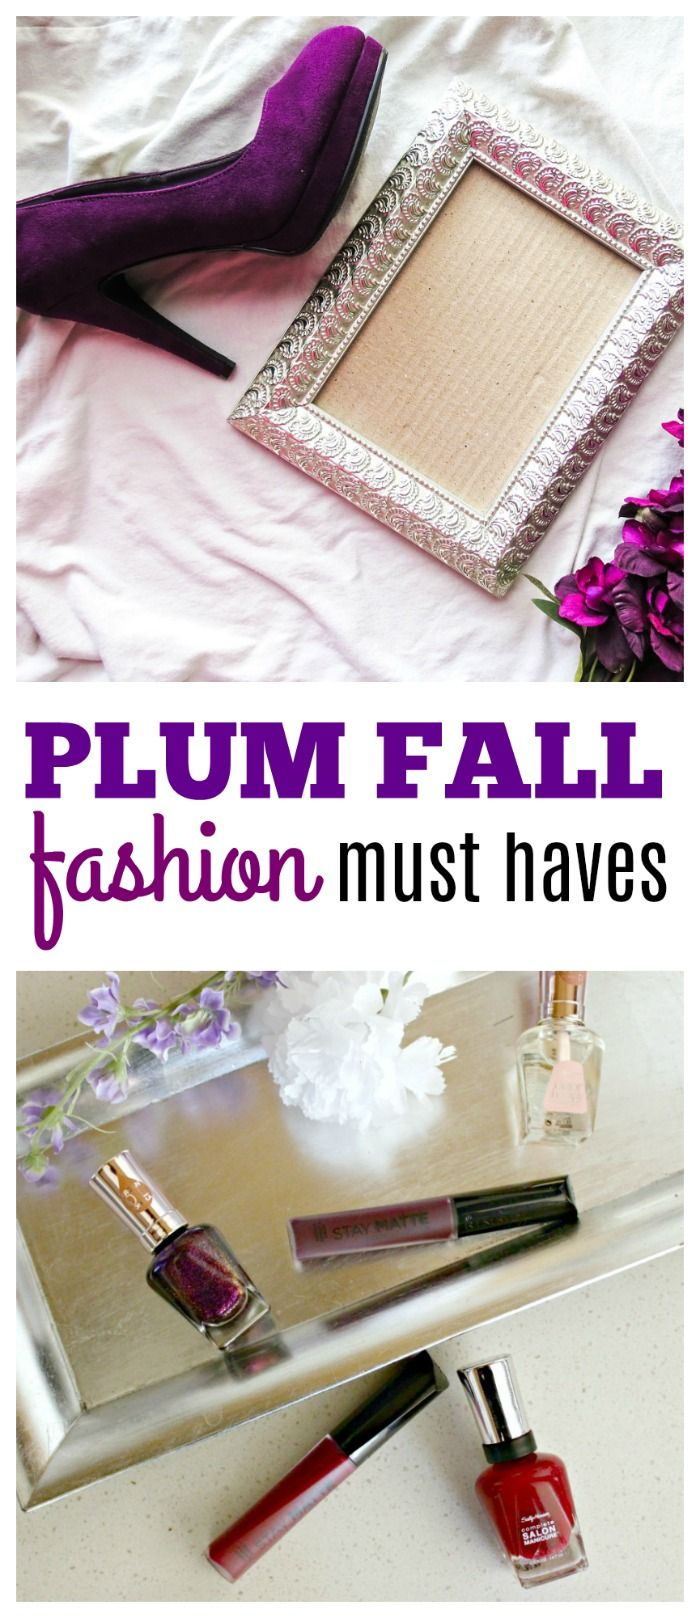 Plum Color Lipstick and Other Fall Fashion Must Haves via @ellenblogs ad